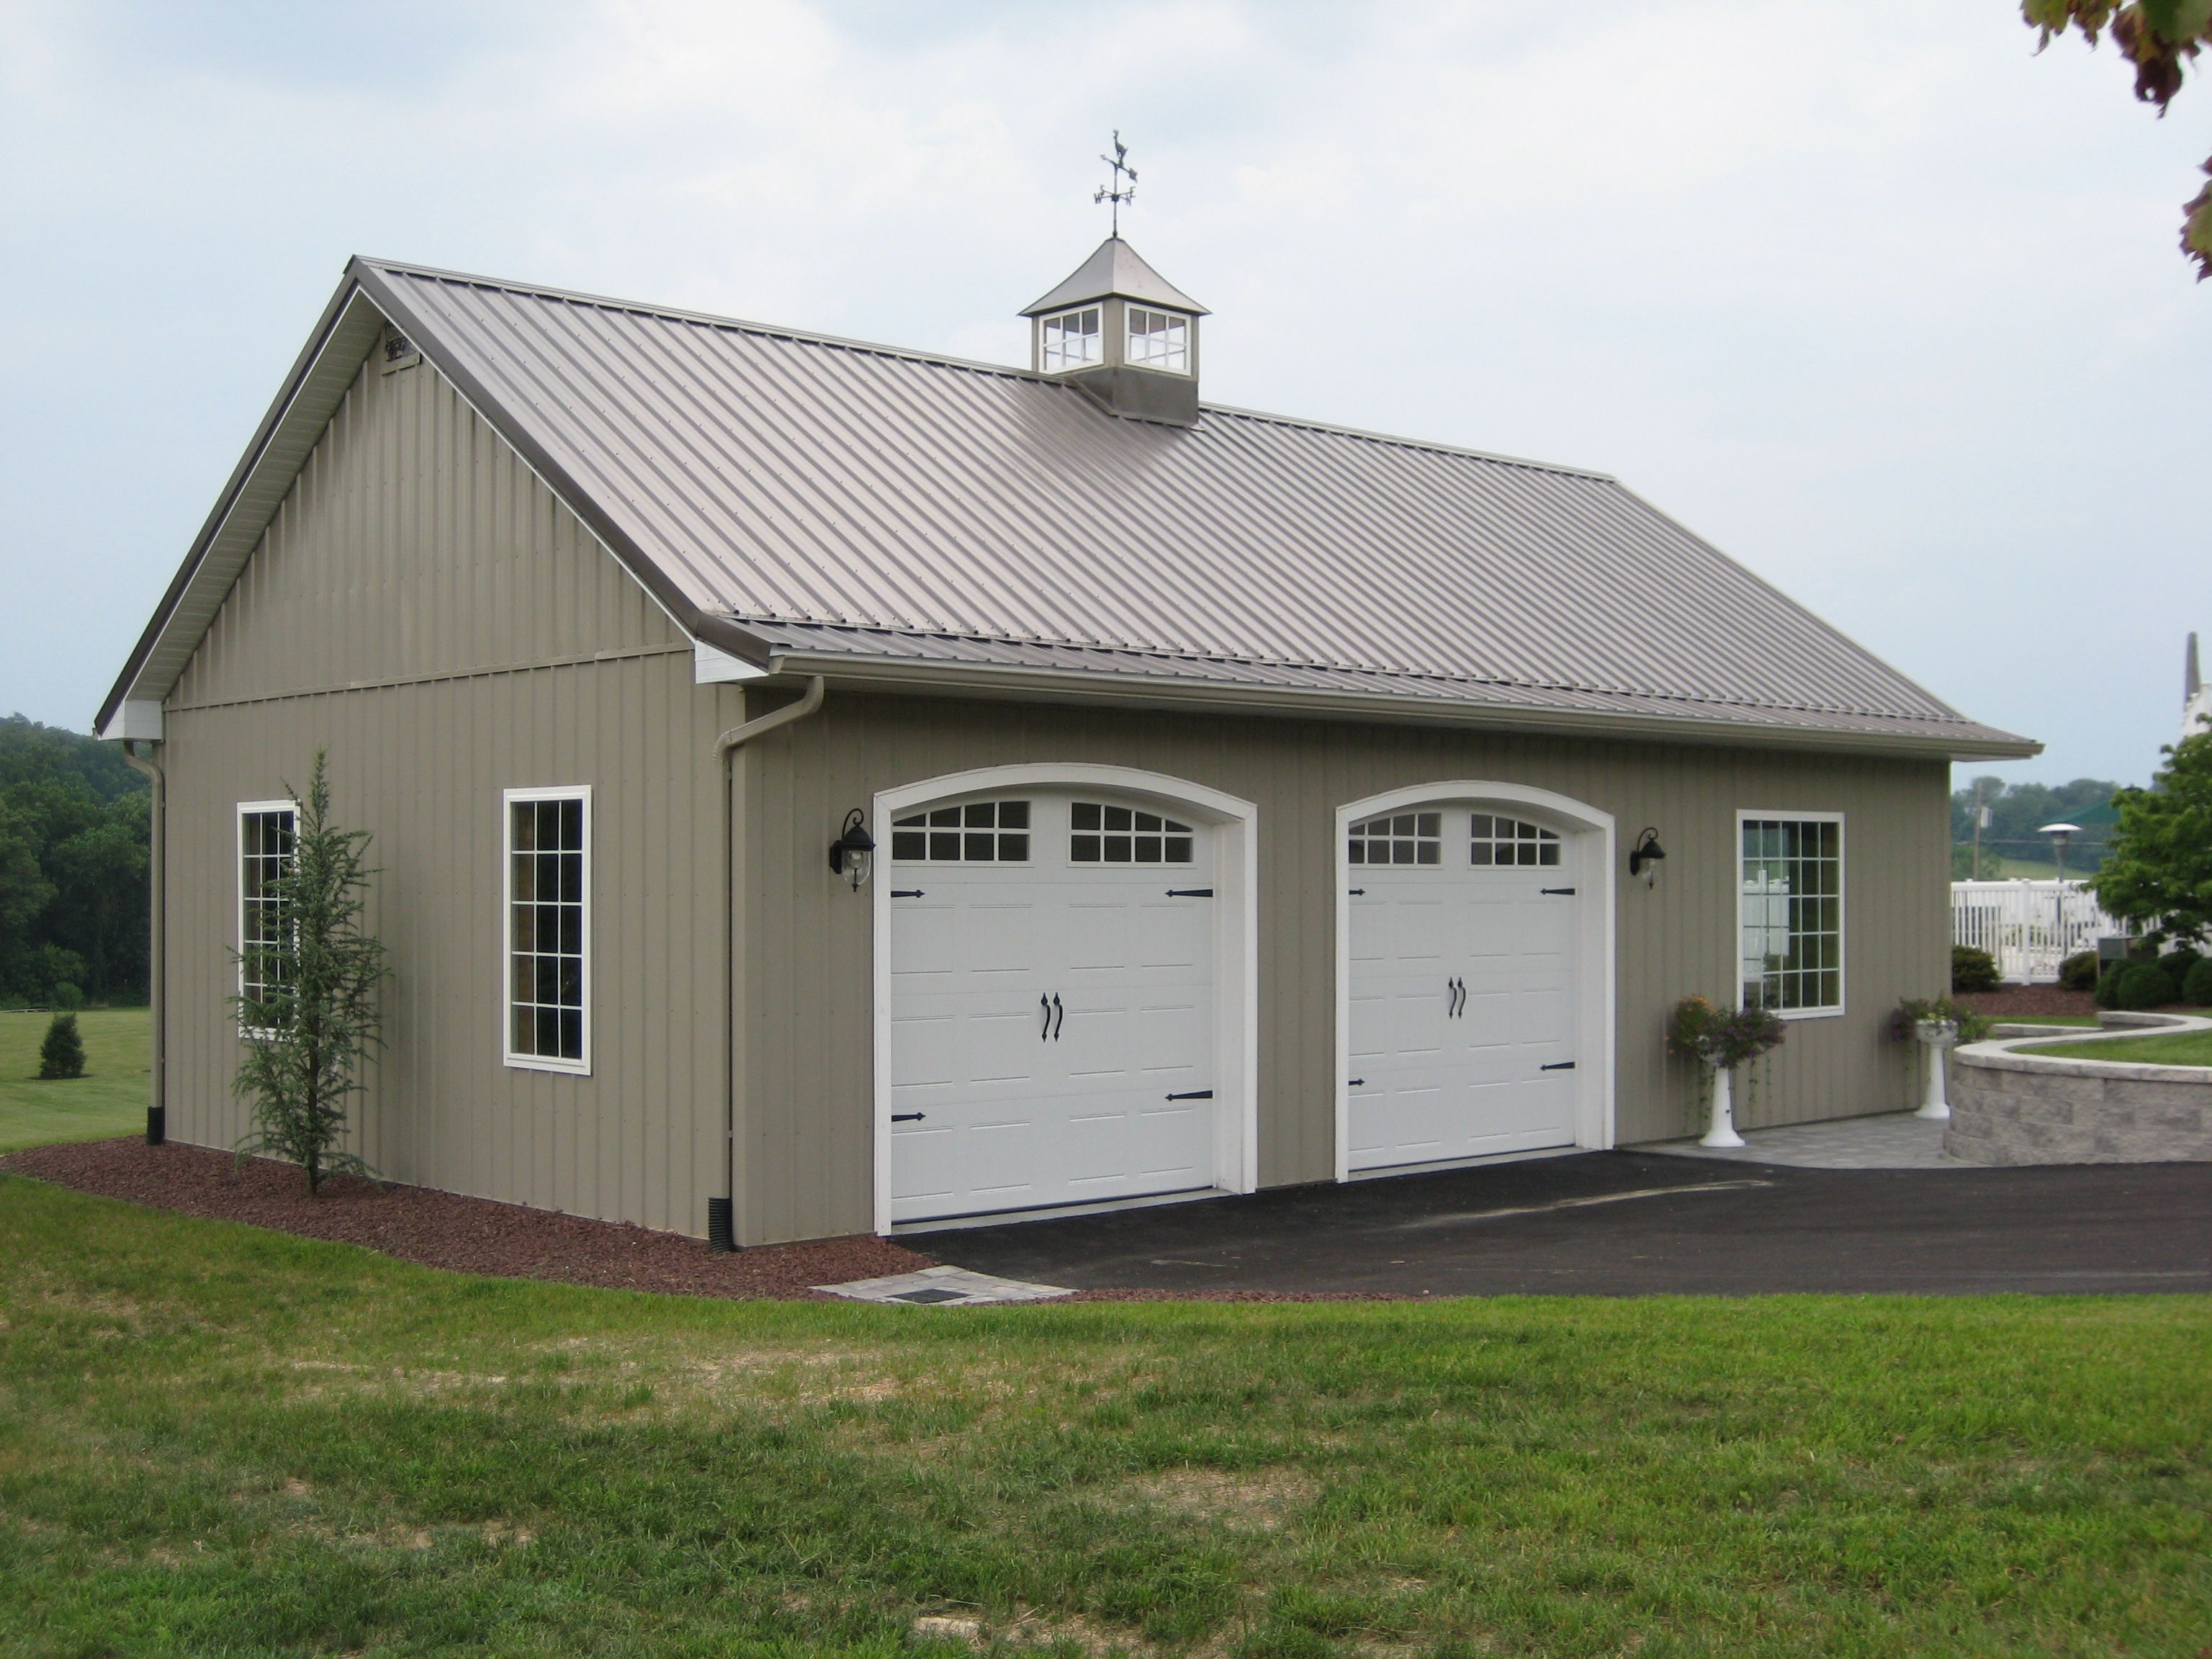 Best 25 pole barn garage ideas on pinterest pole barns Detached garage remodel ideas